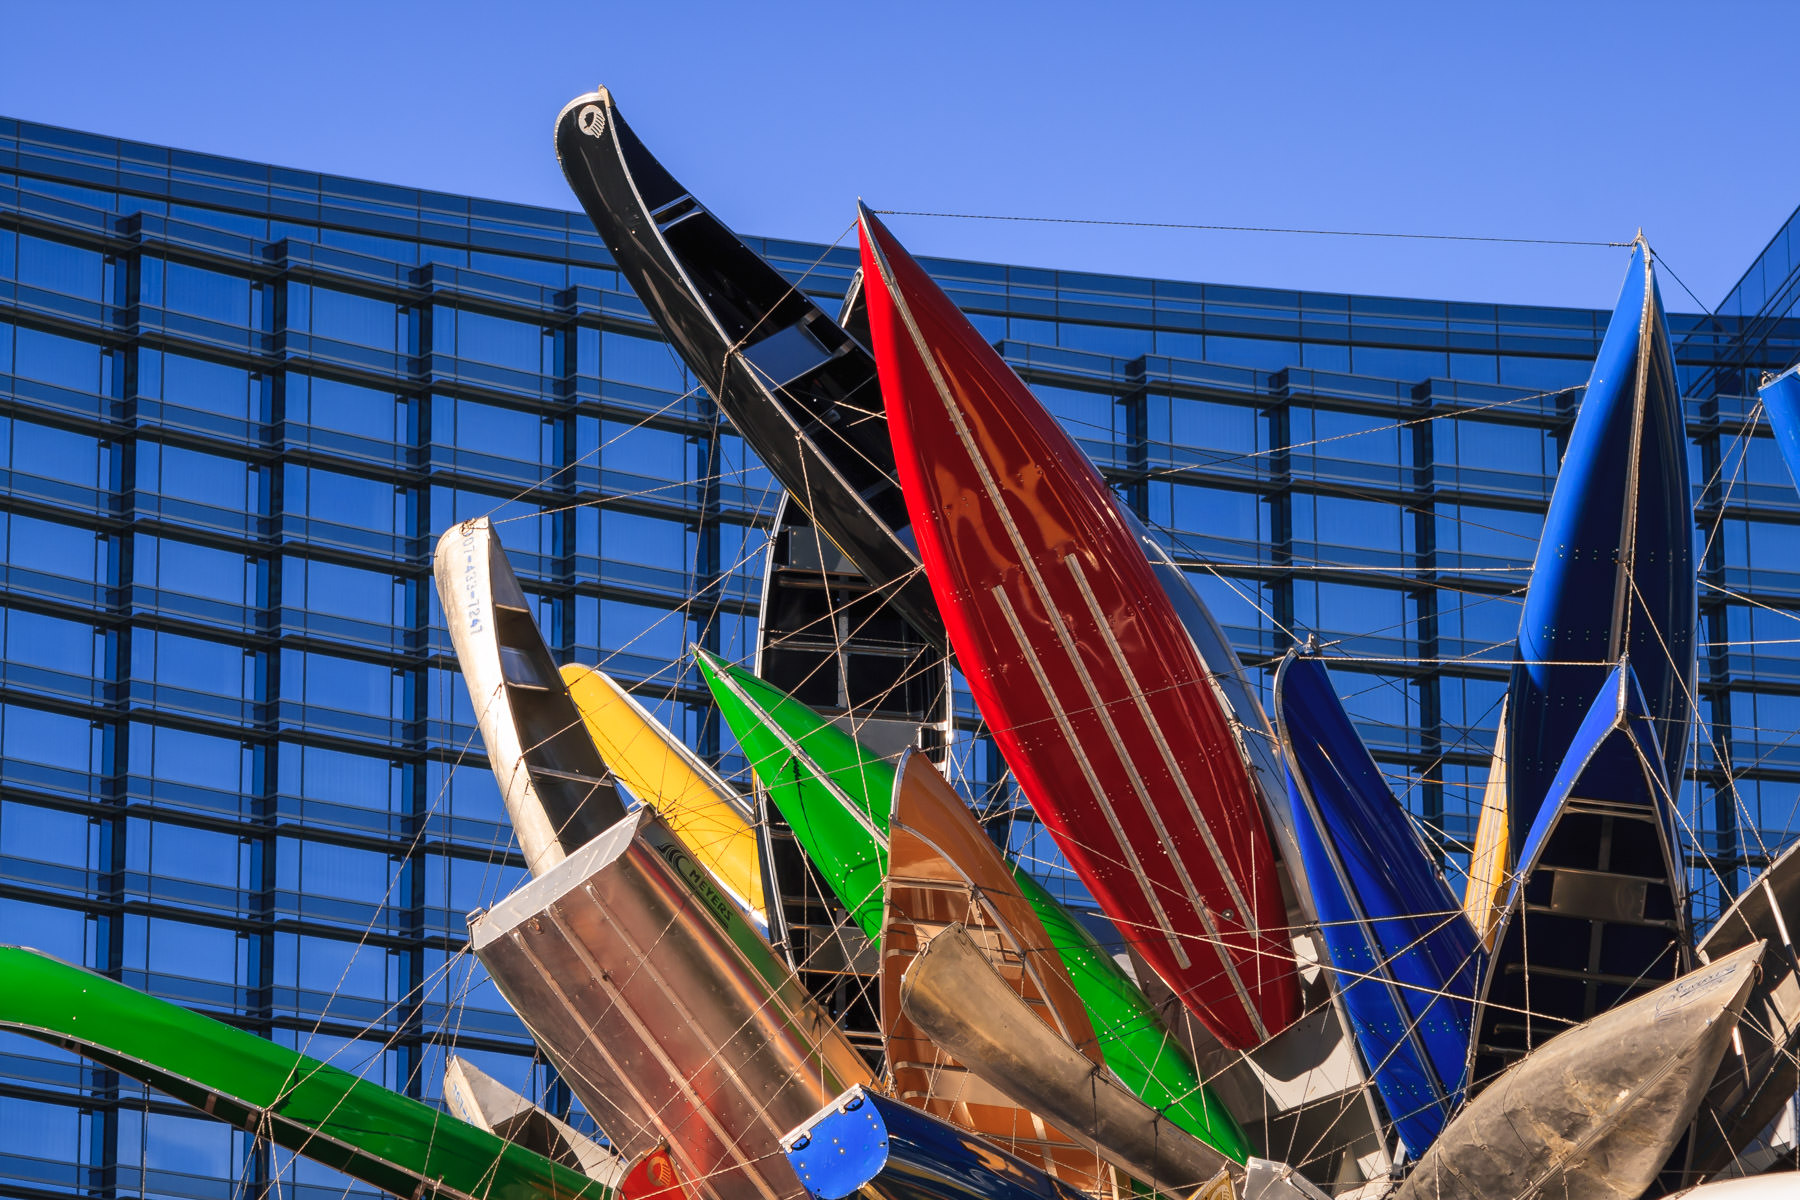 "Nancy Rubins' ""Big Edge"" consists of 250 small boats and sits between the Vdara Hotel & Spa and the Aria, CityCenter, Las Vegas."